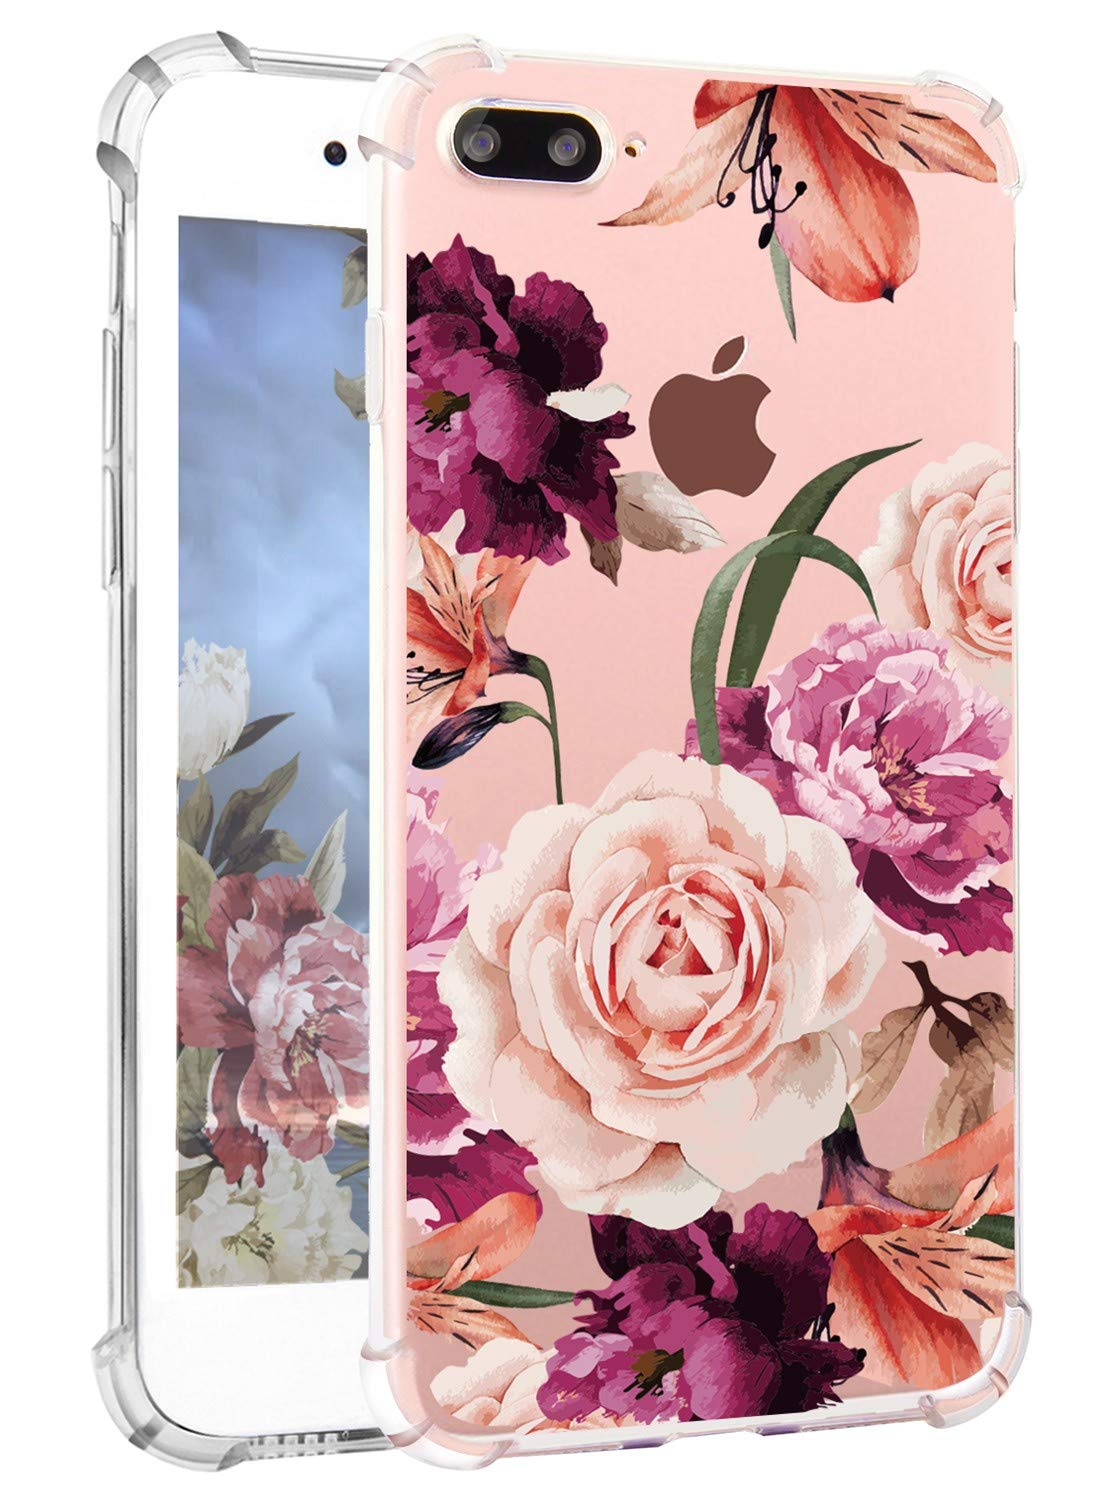 buy popular d5a7a ba6c7 Hepix Flowers iPhone 8 Plus Cases Girly iPhone 7 Plus Floral Case, Pretty  Pink Rose iPhone Case Clear Soft Flexible TPU with Four Bumpers